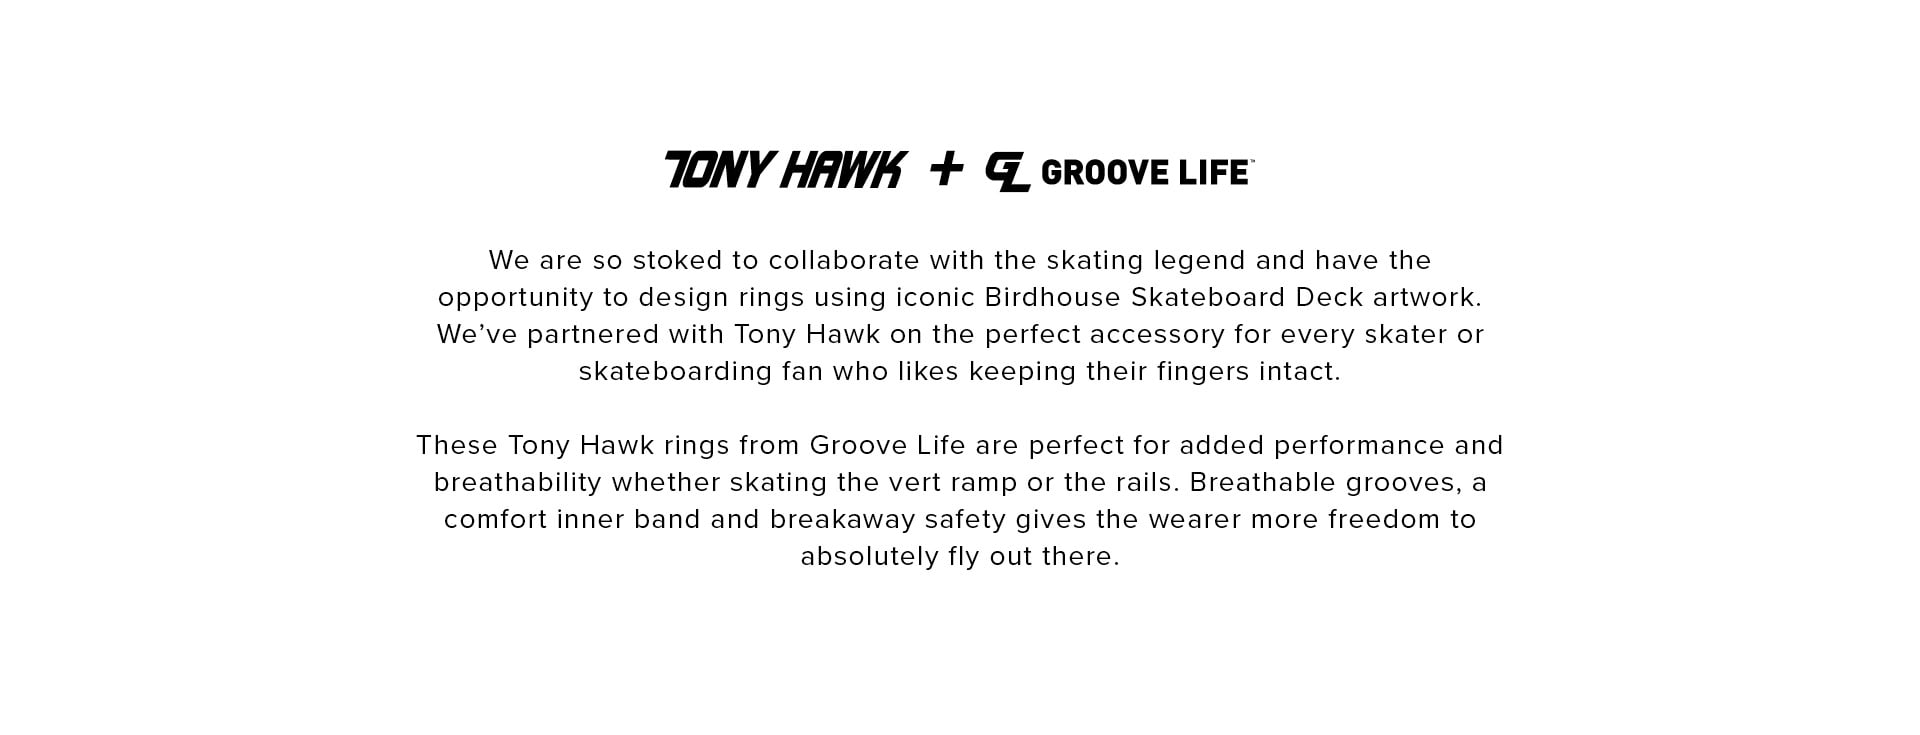 Tony Hawk + Groove Life; rings are designed with iconic Birdhouse Skateboard Deck artwork